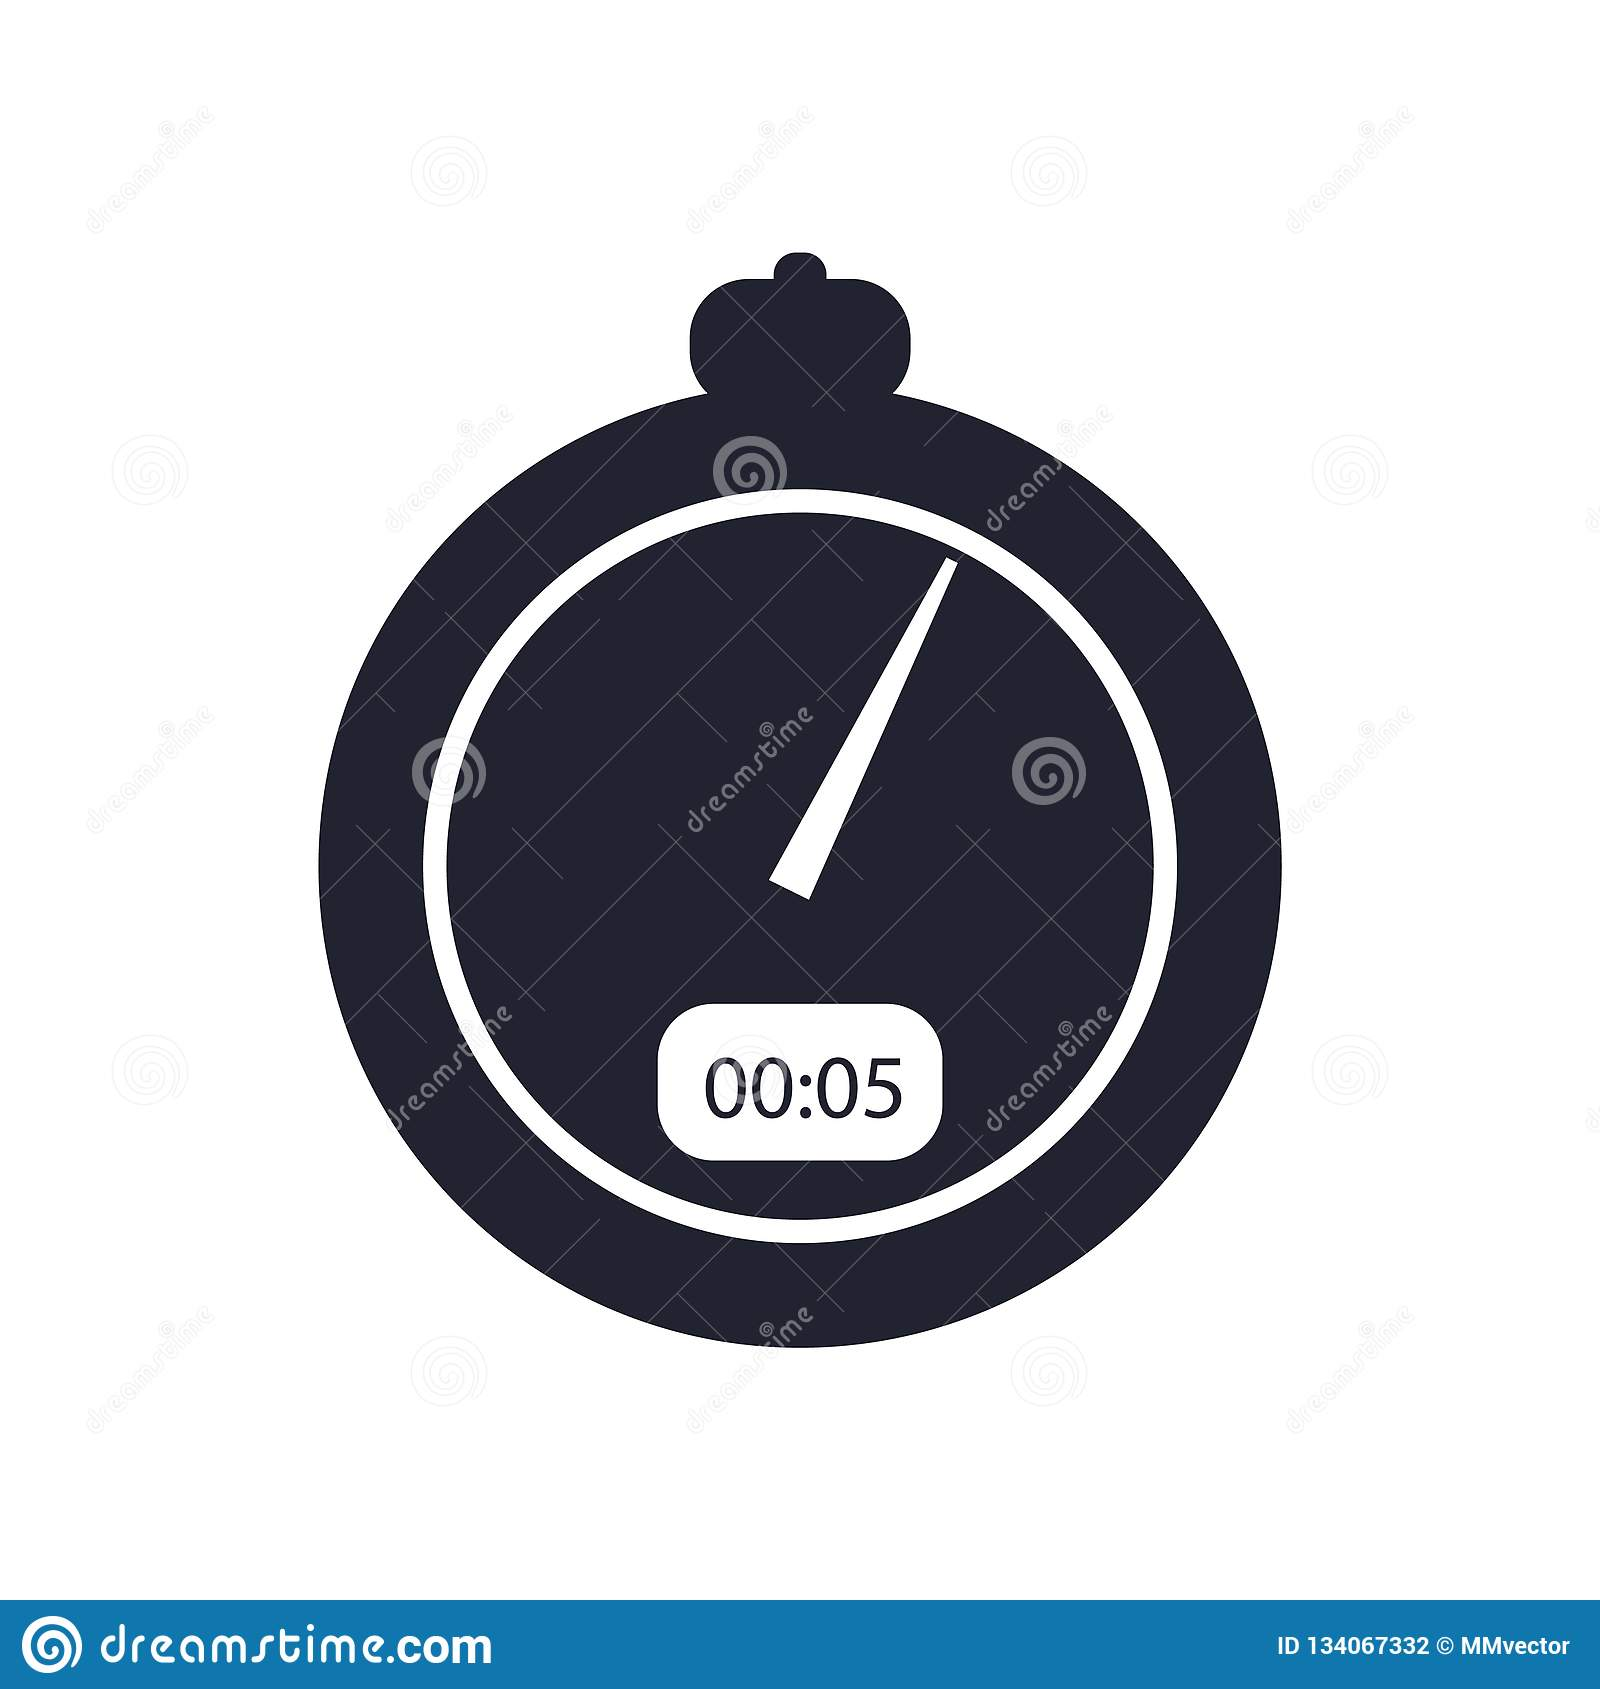 Stopwatch icon vector sign and symbol isolated on white background, Stopwatch logo concept